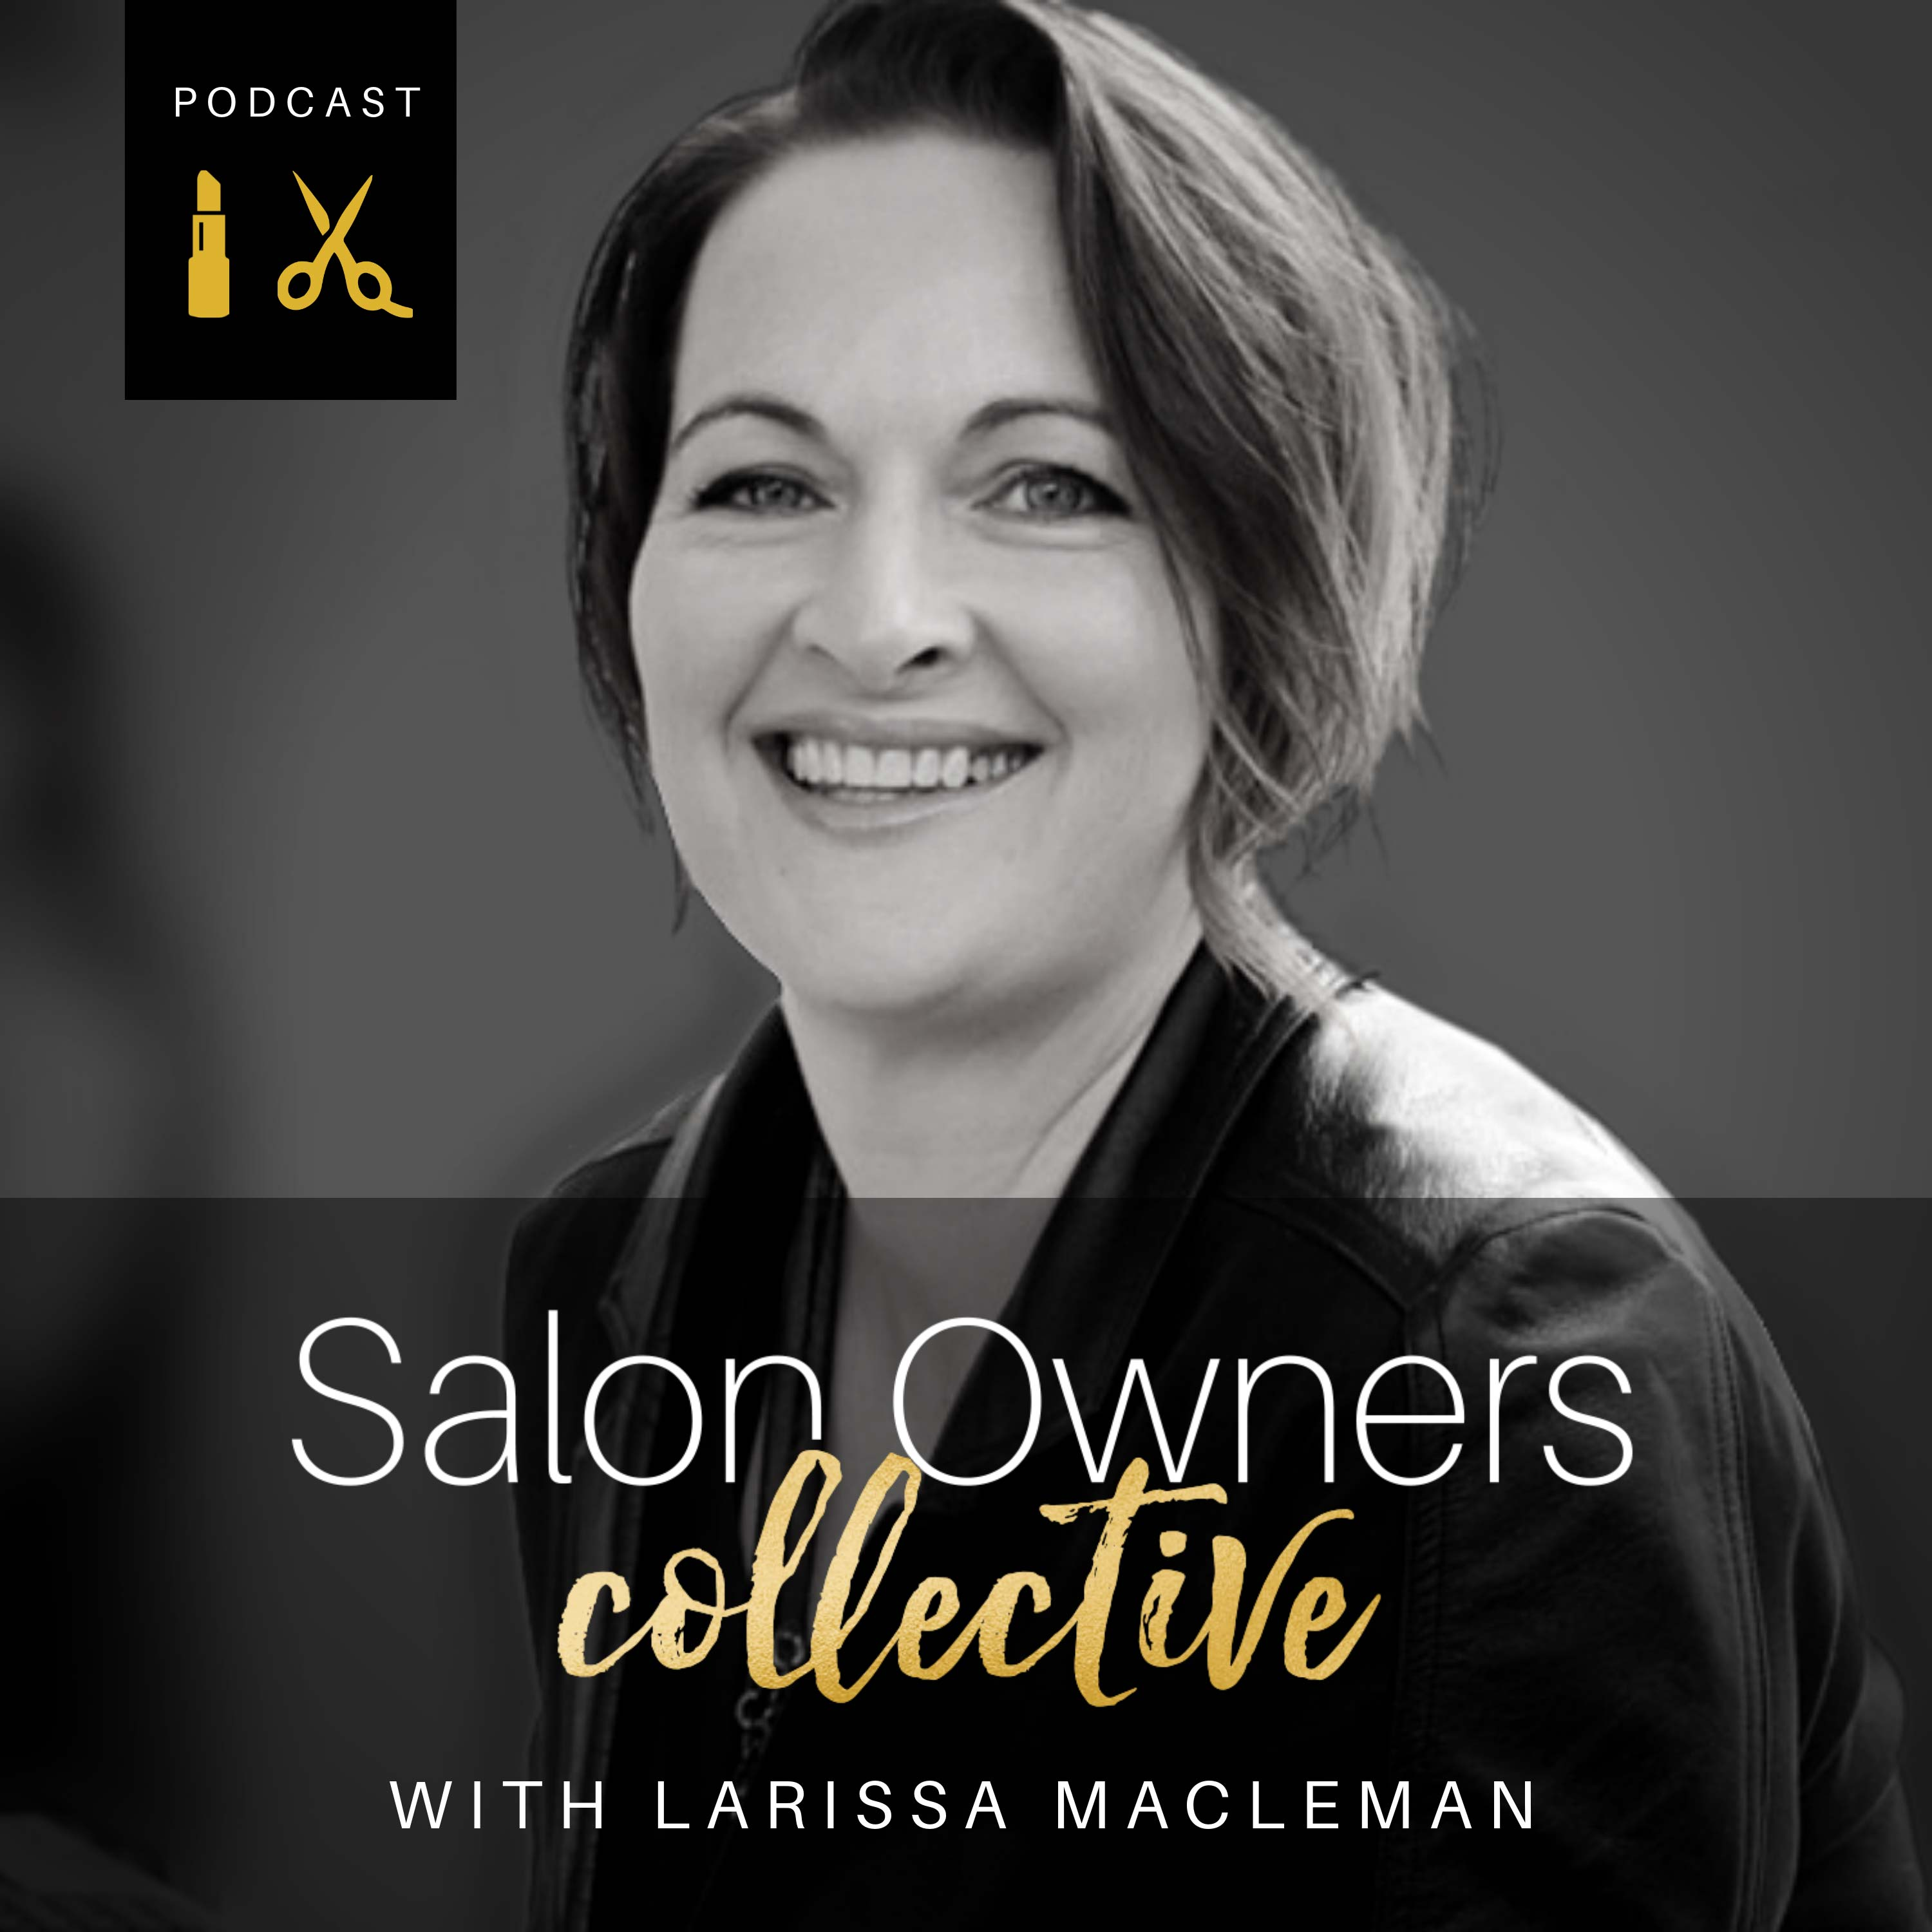 Artwork for podcast Salon Owners Collective